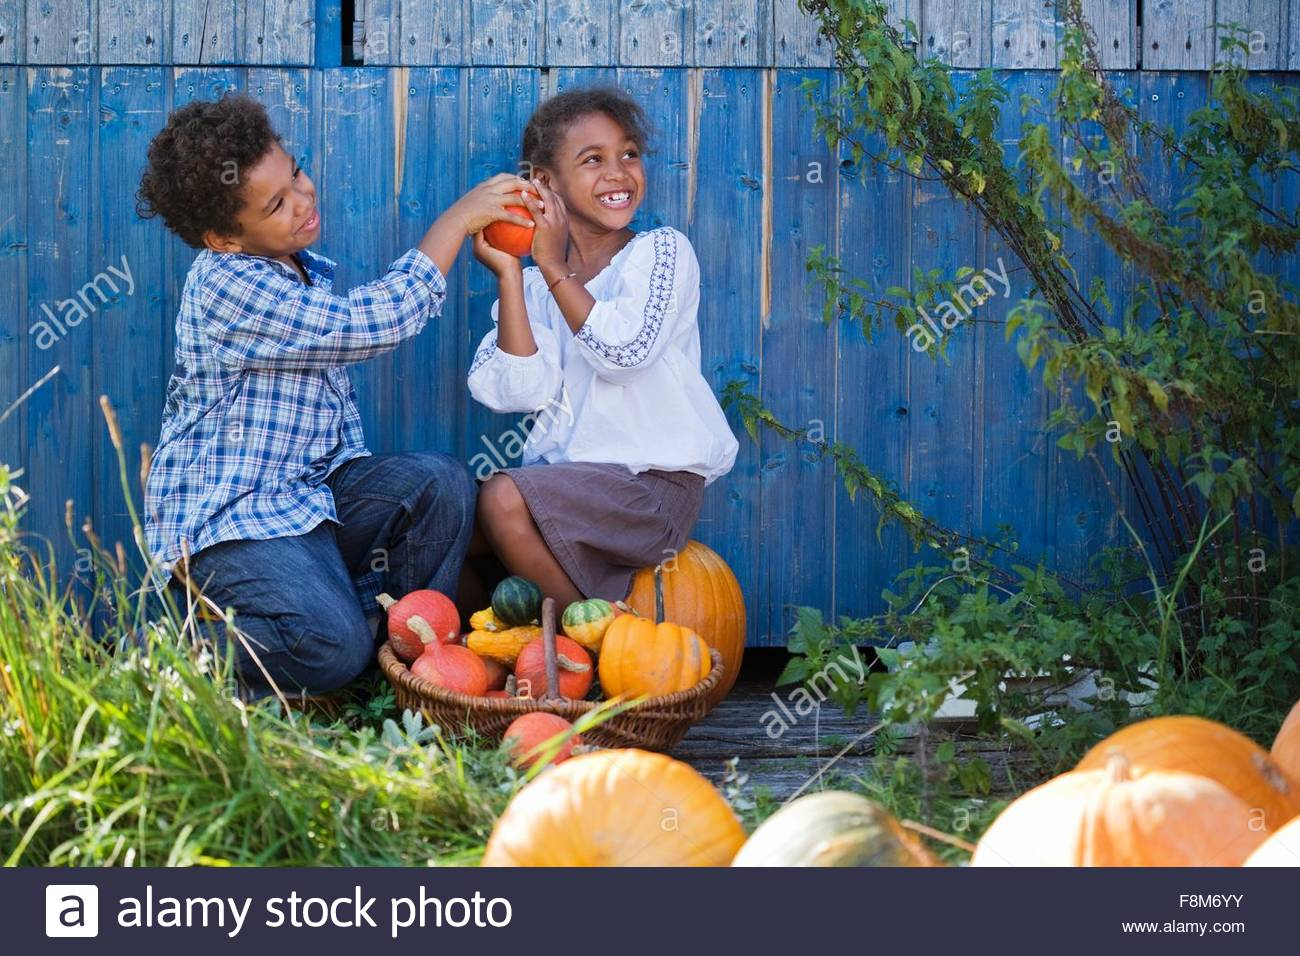 Children playing with pumpkins - Stock Image